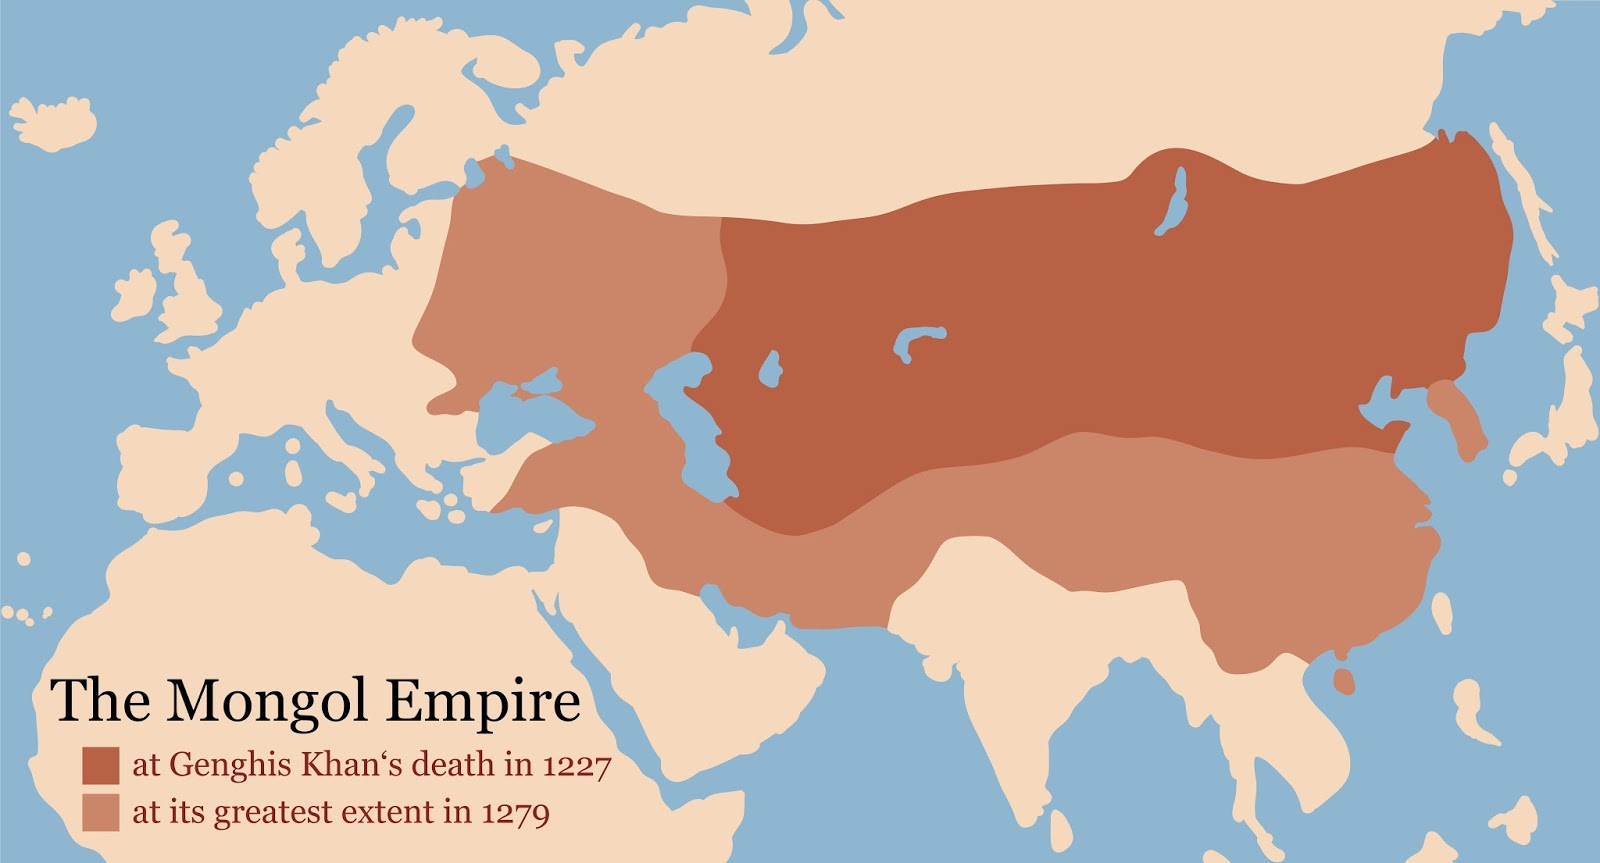 the mongol empire Mongol empire mongol empire – genghis khan the mongol empire was founded by genghis khan, a mongol political and military leader who sometimes brutally conquered and united the mongol tribes.